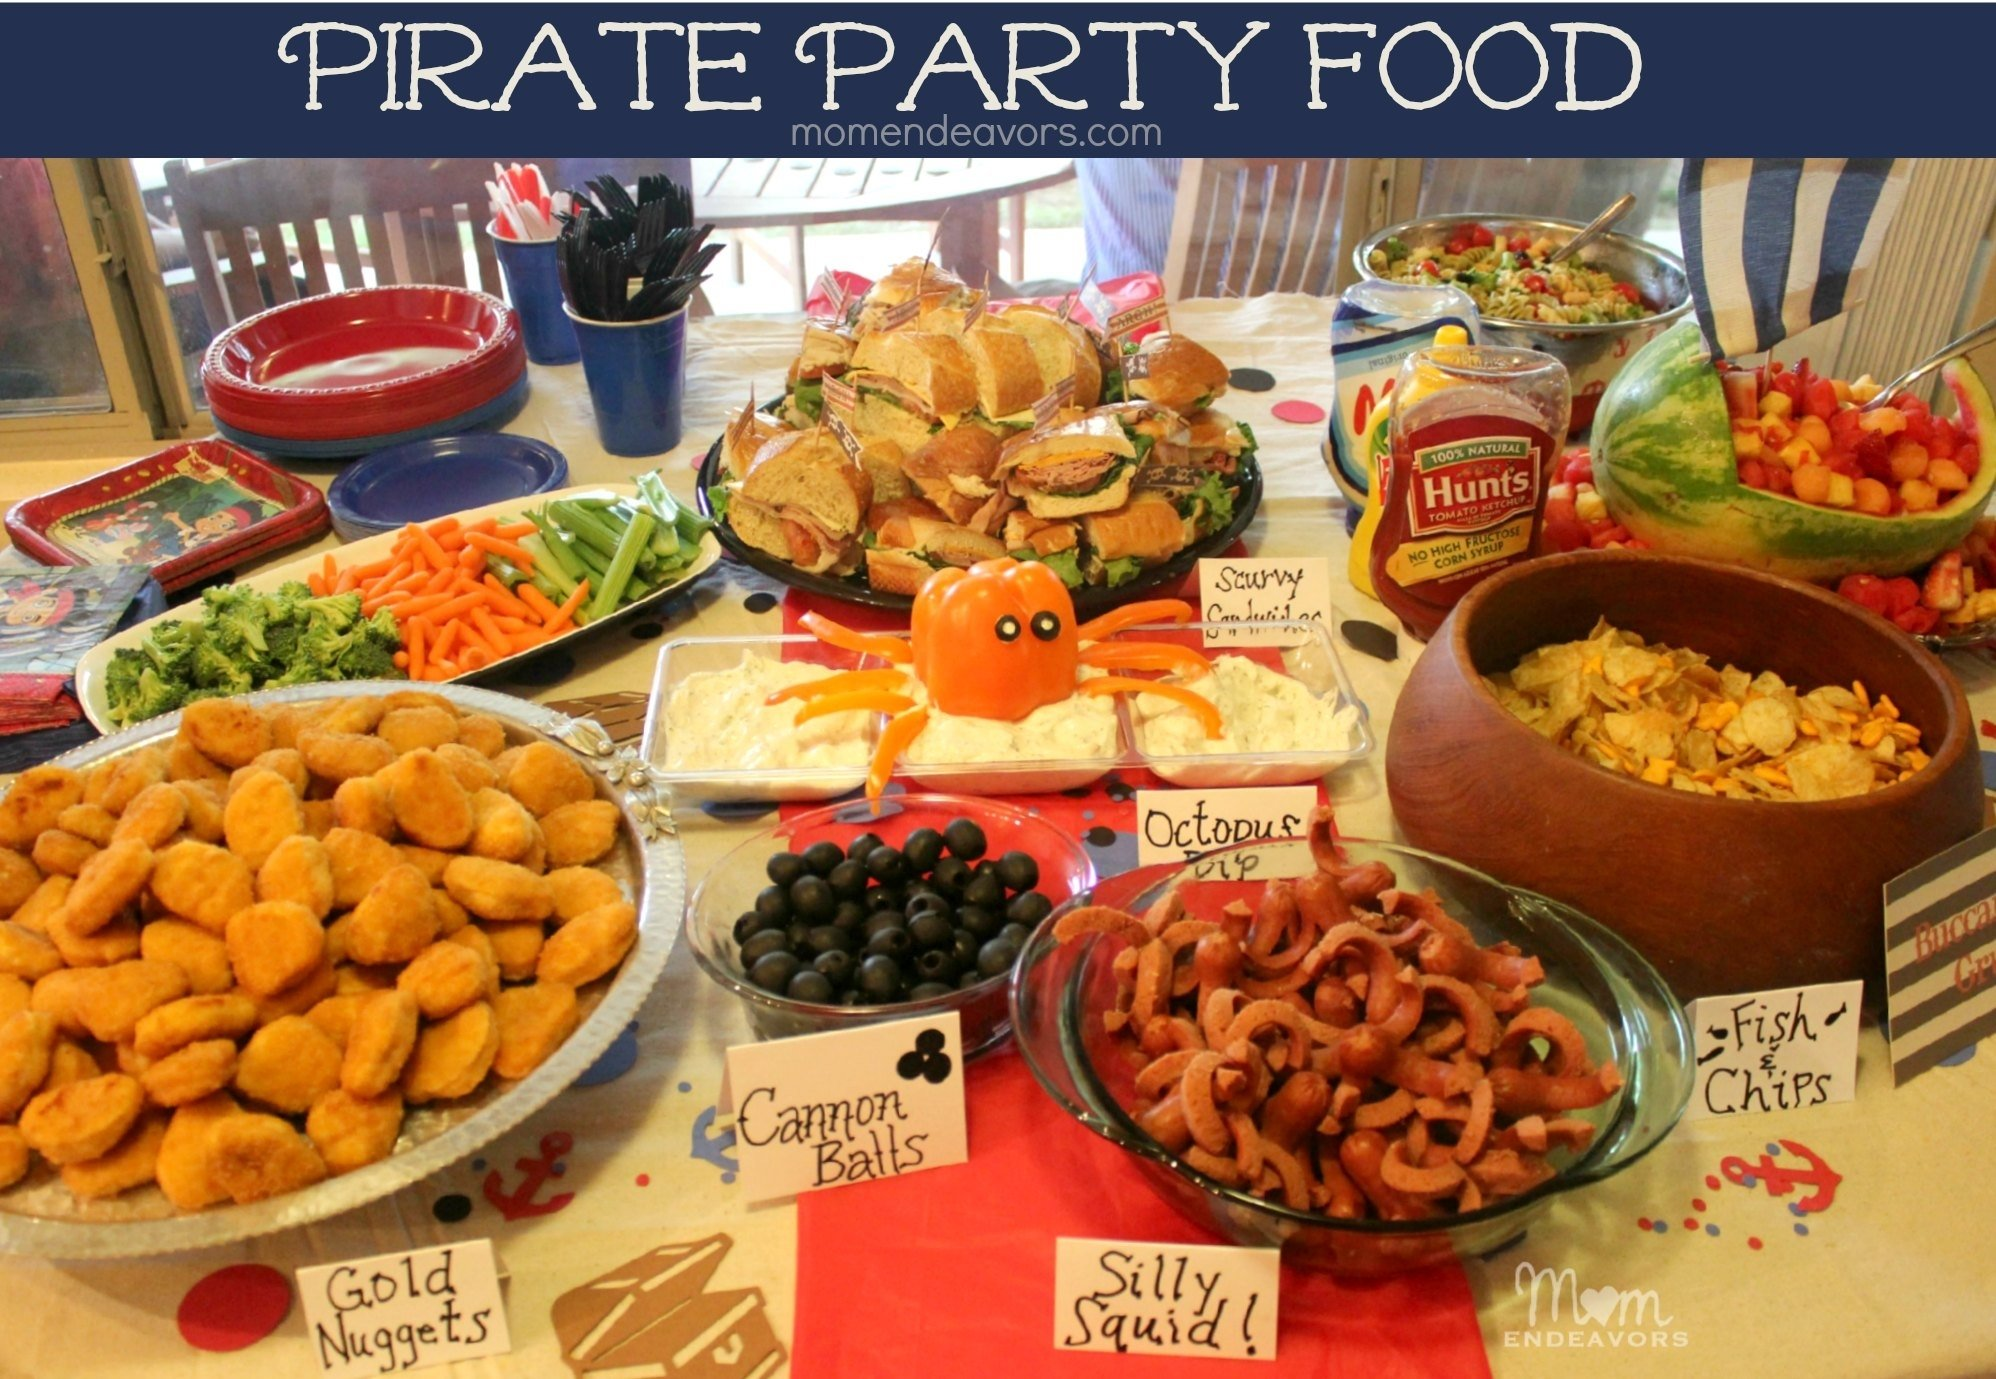 10 Fashionable Food Ideas For Birthday Party jake and the never land pirates birthday party food 10 2021